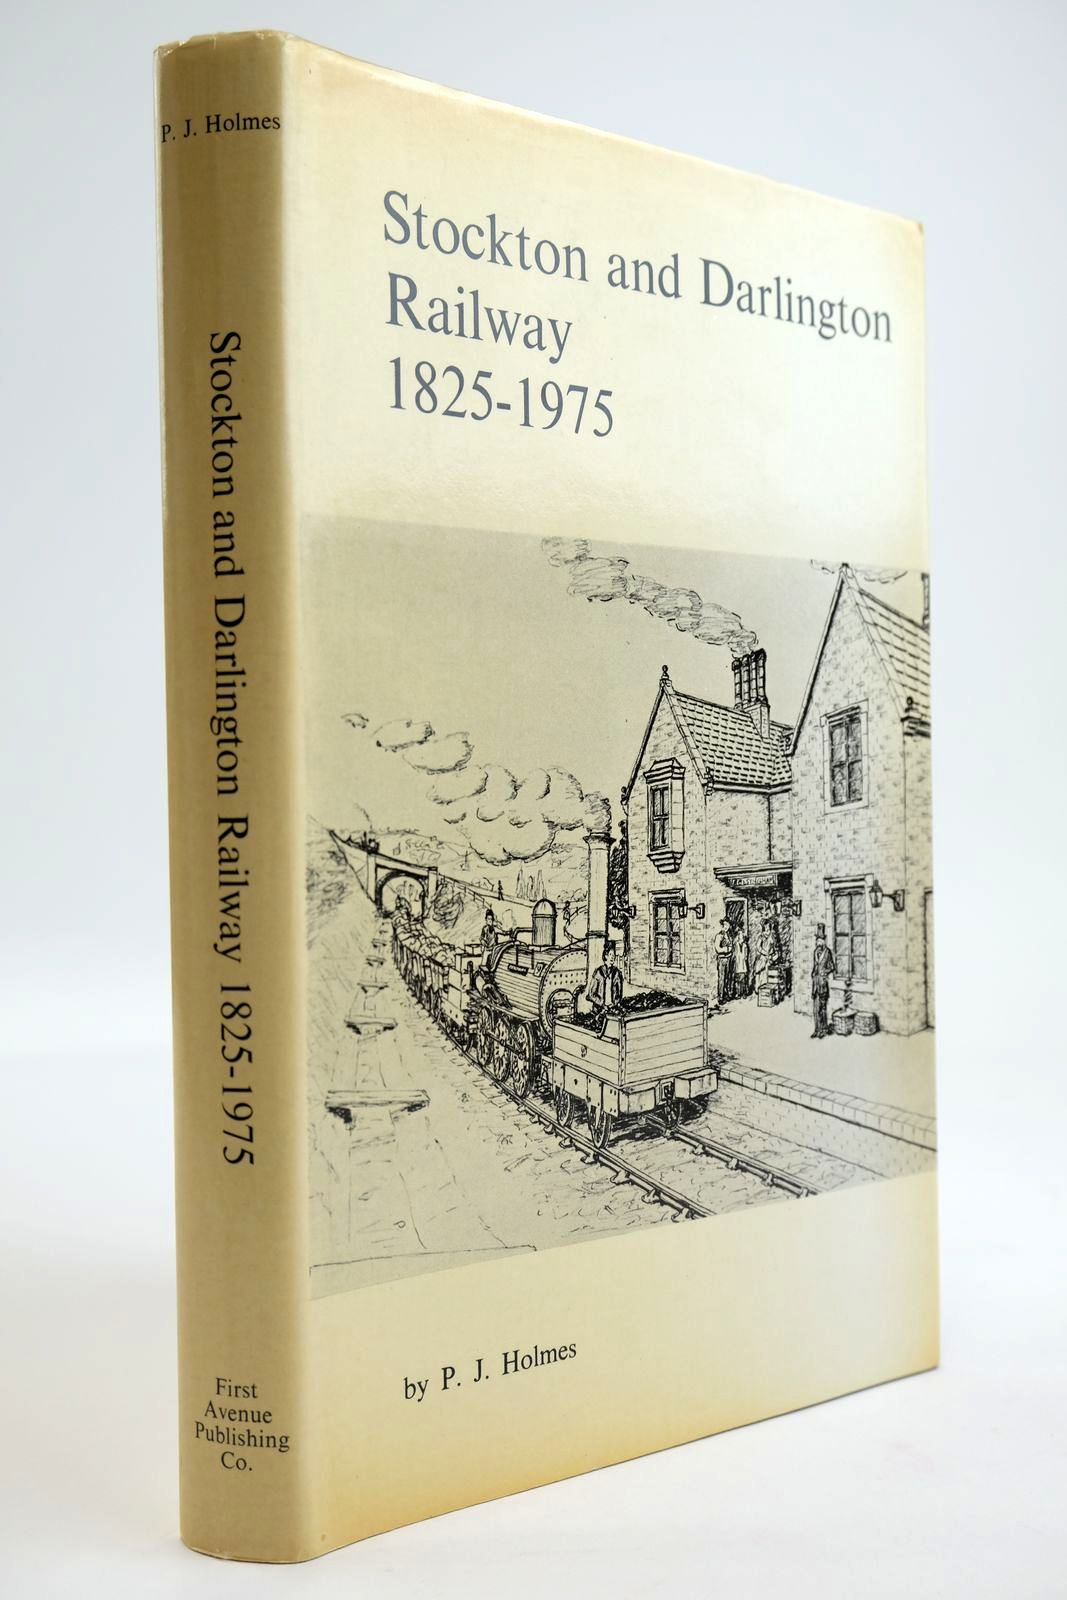 Photo of THE STOCKTON AND DARLINGTON RAILWAY 1825-1975 written by Holmes, P.J. published by First Avenue Publishing Company (STOCK CODE: 2133599)  for sale by Stella & Rose's Books